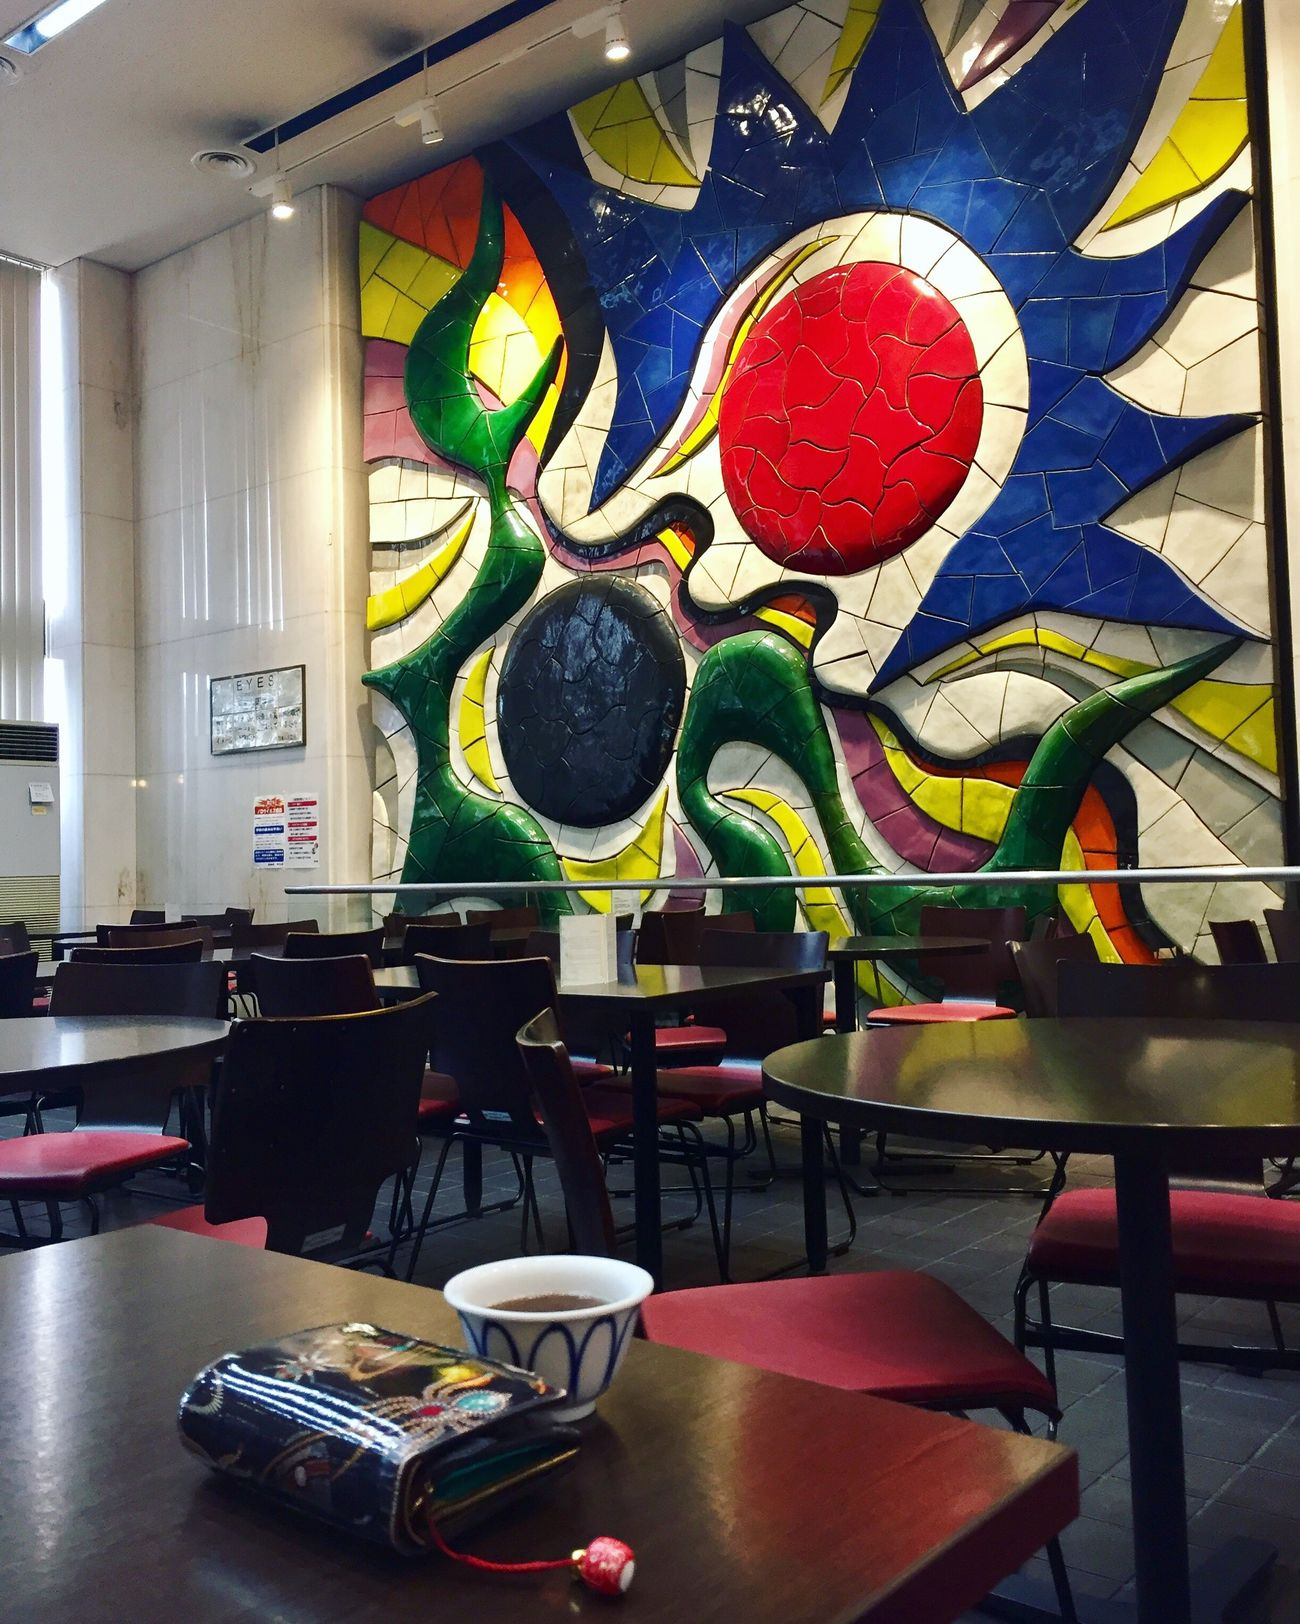 Multi Colored Wall No People Taro Okamoto Mittagessen Lunch Essen Eating Tee Cafe Augen Eyes Wall Art Wand Painting Bild Pause Mittagspause Table Uni Chilling Tea Relaxing Bunt Colors